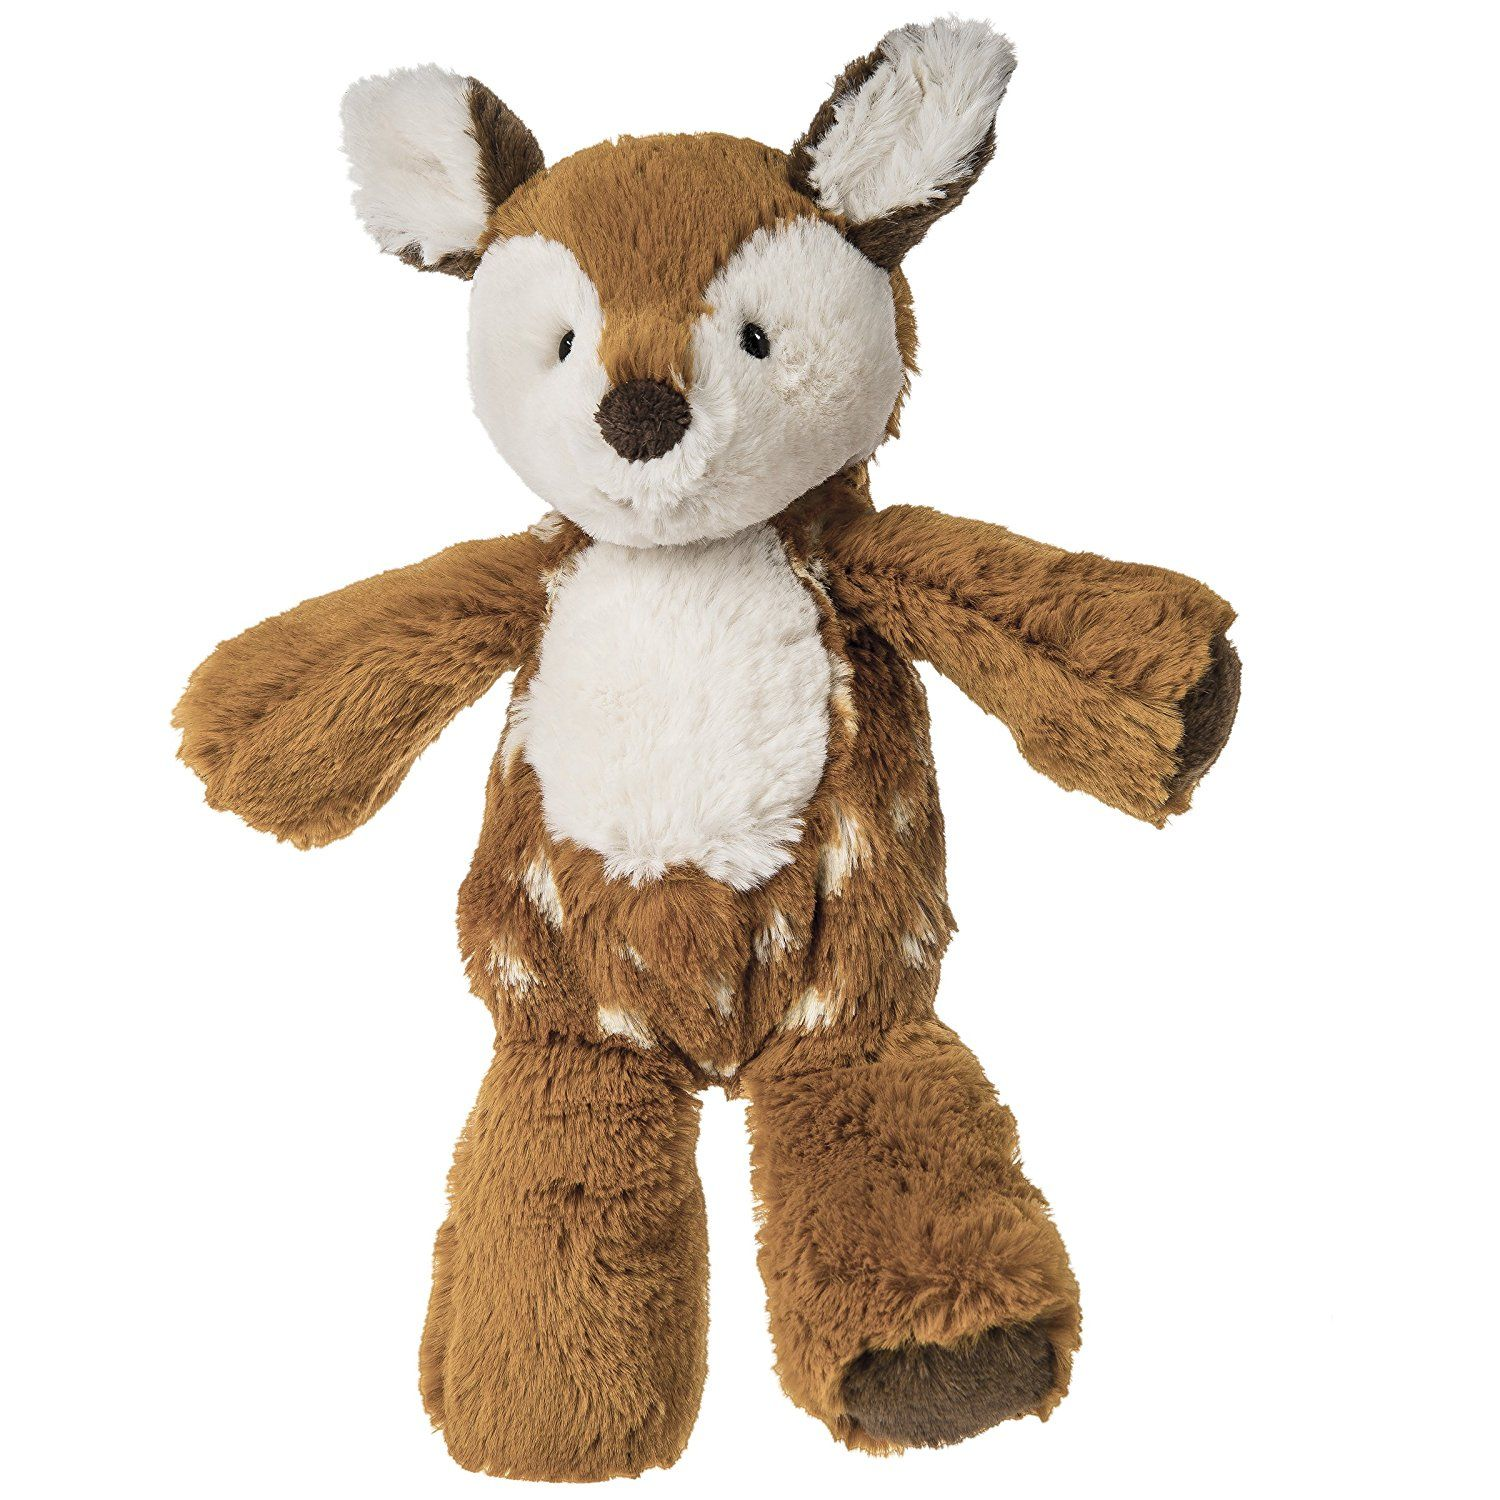 Toys Soft toy animals, Toddler stuffed animals, Animal